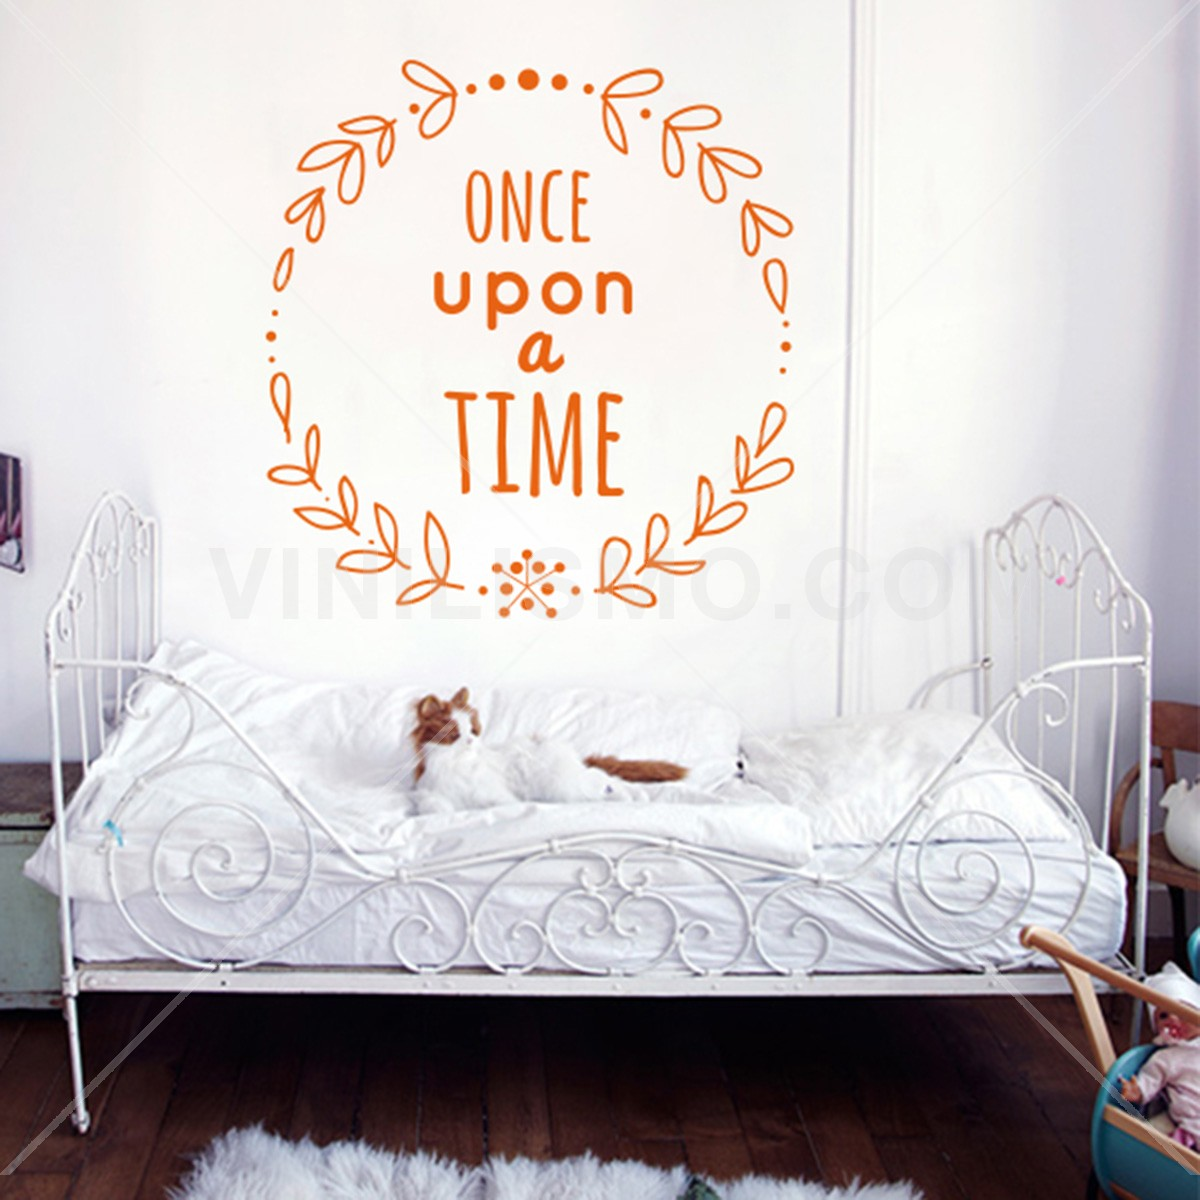 Vinilo Decorativo: Once Upon a Time